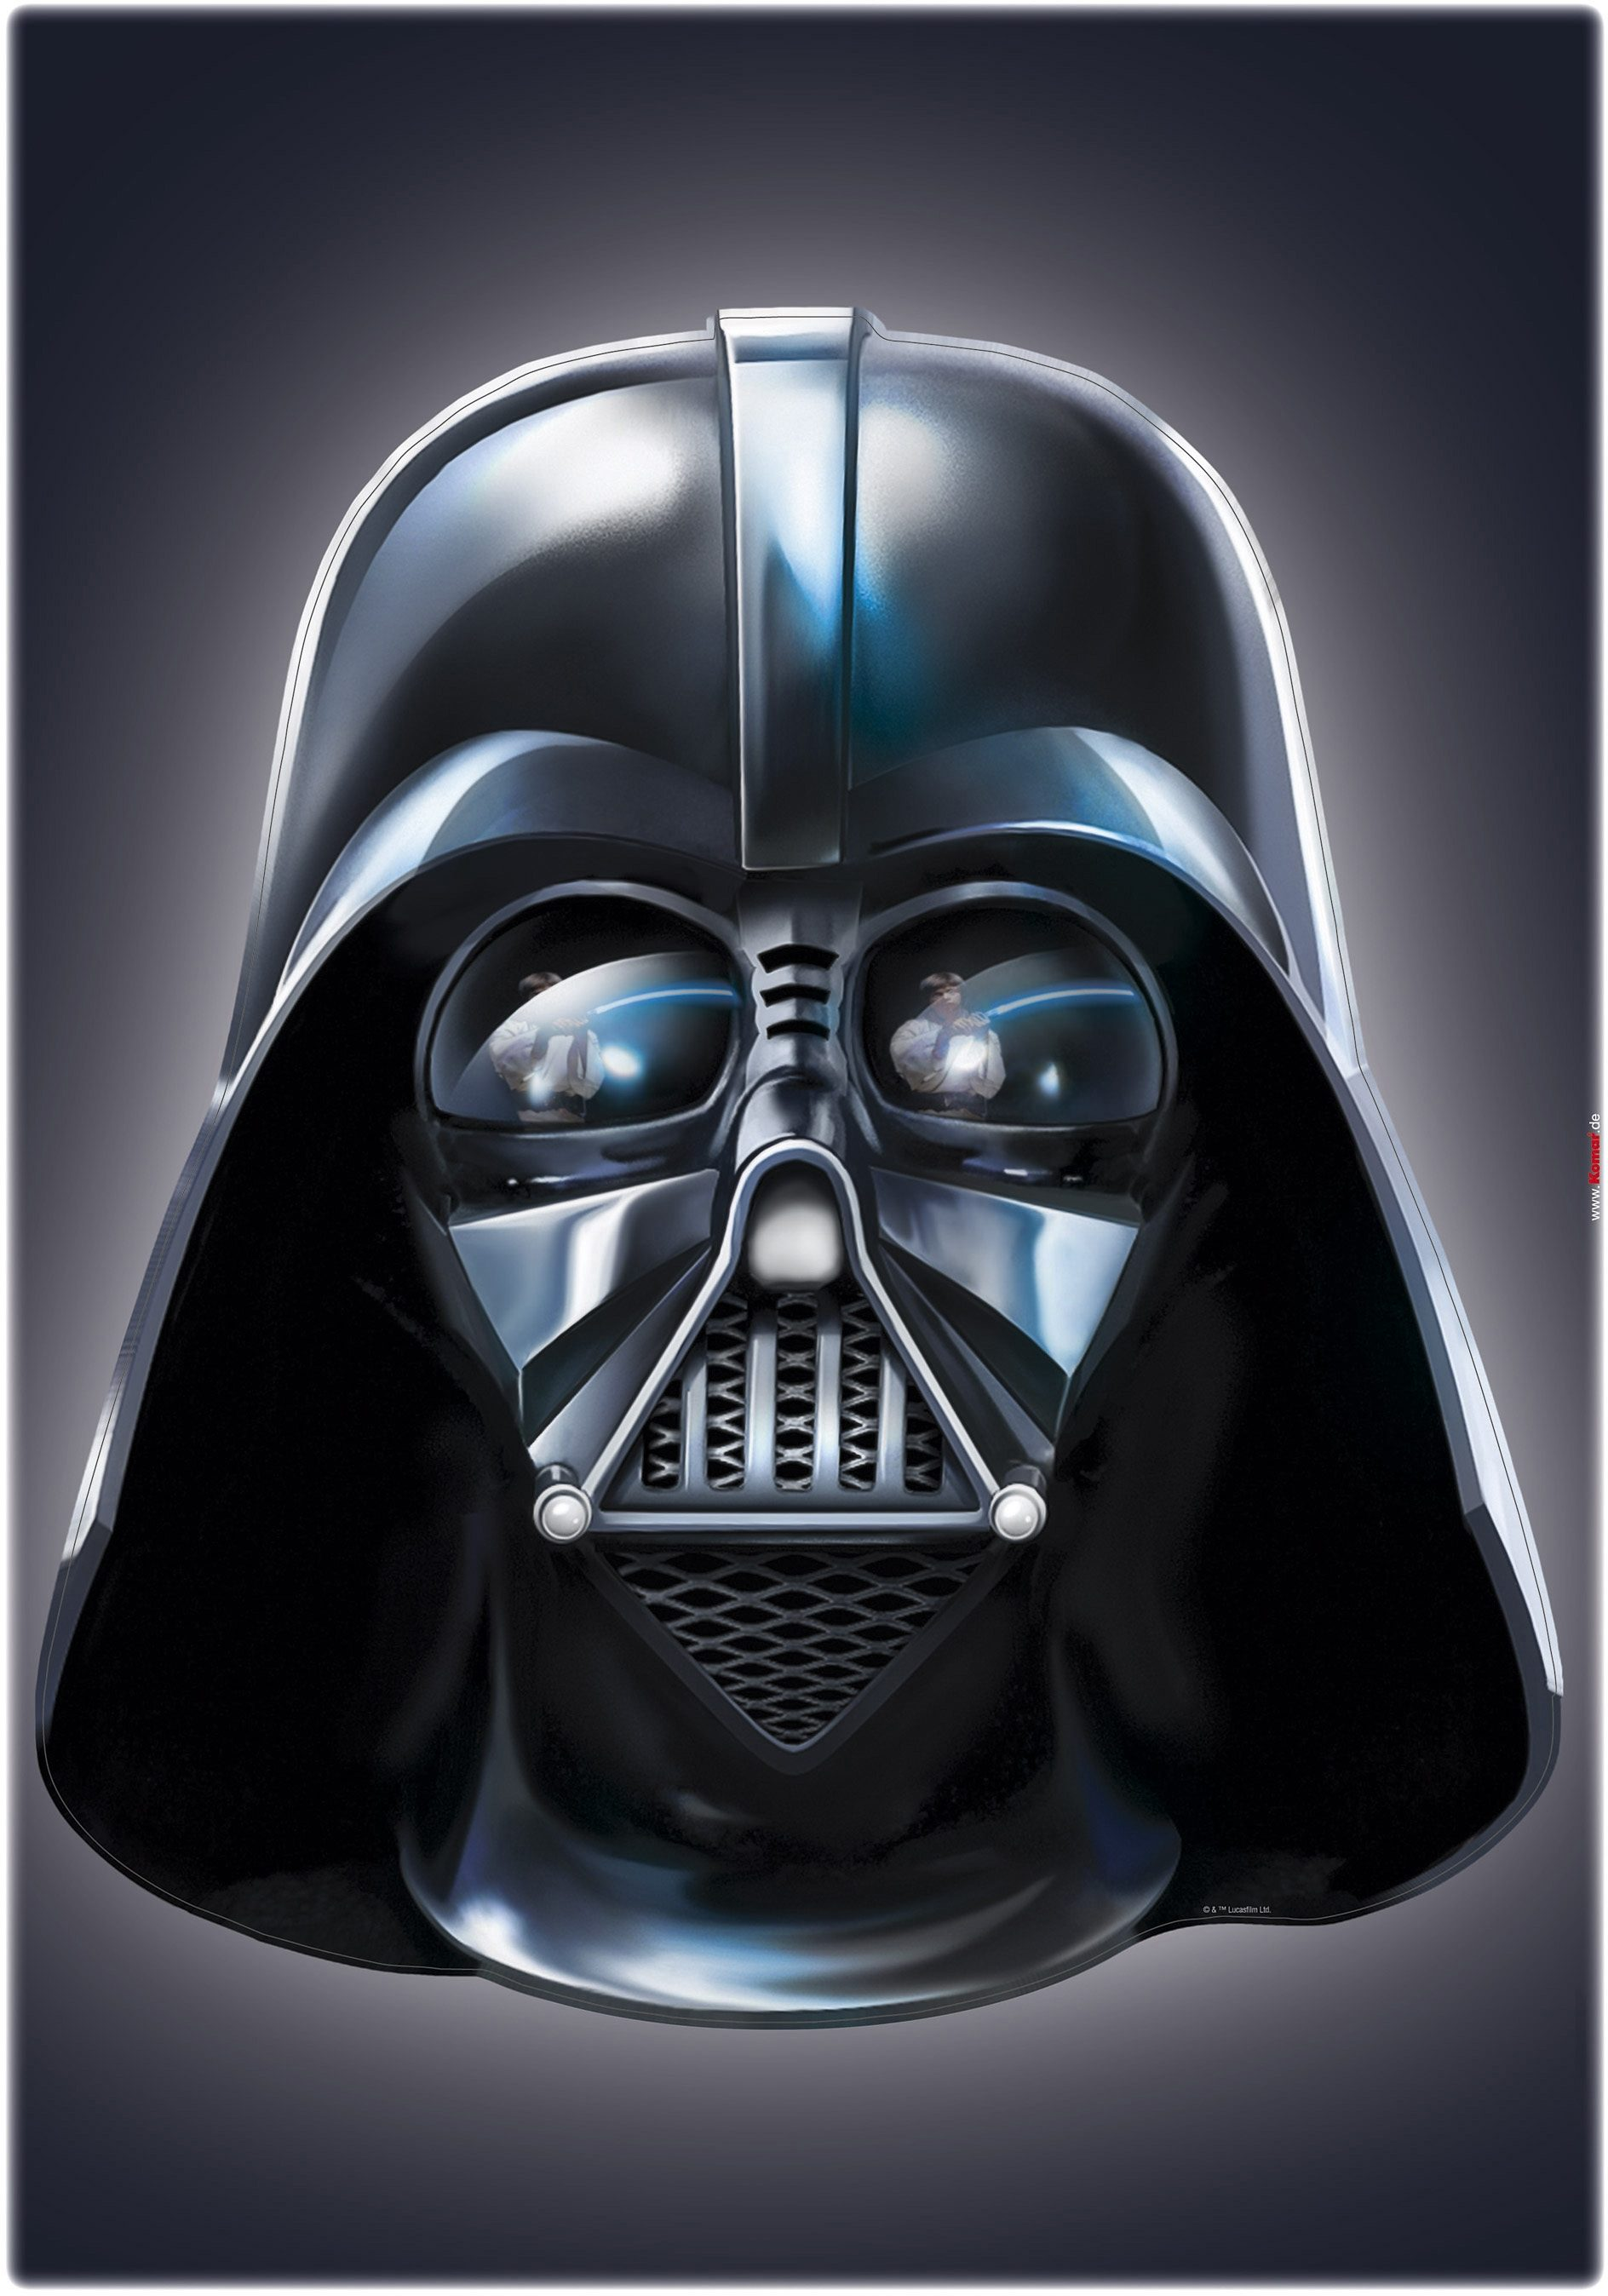 Wandsticker, Komar, »Star Wars Darth Vader«, 50/70 cm